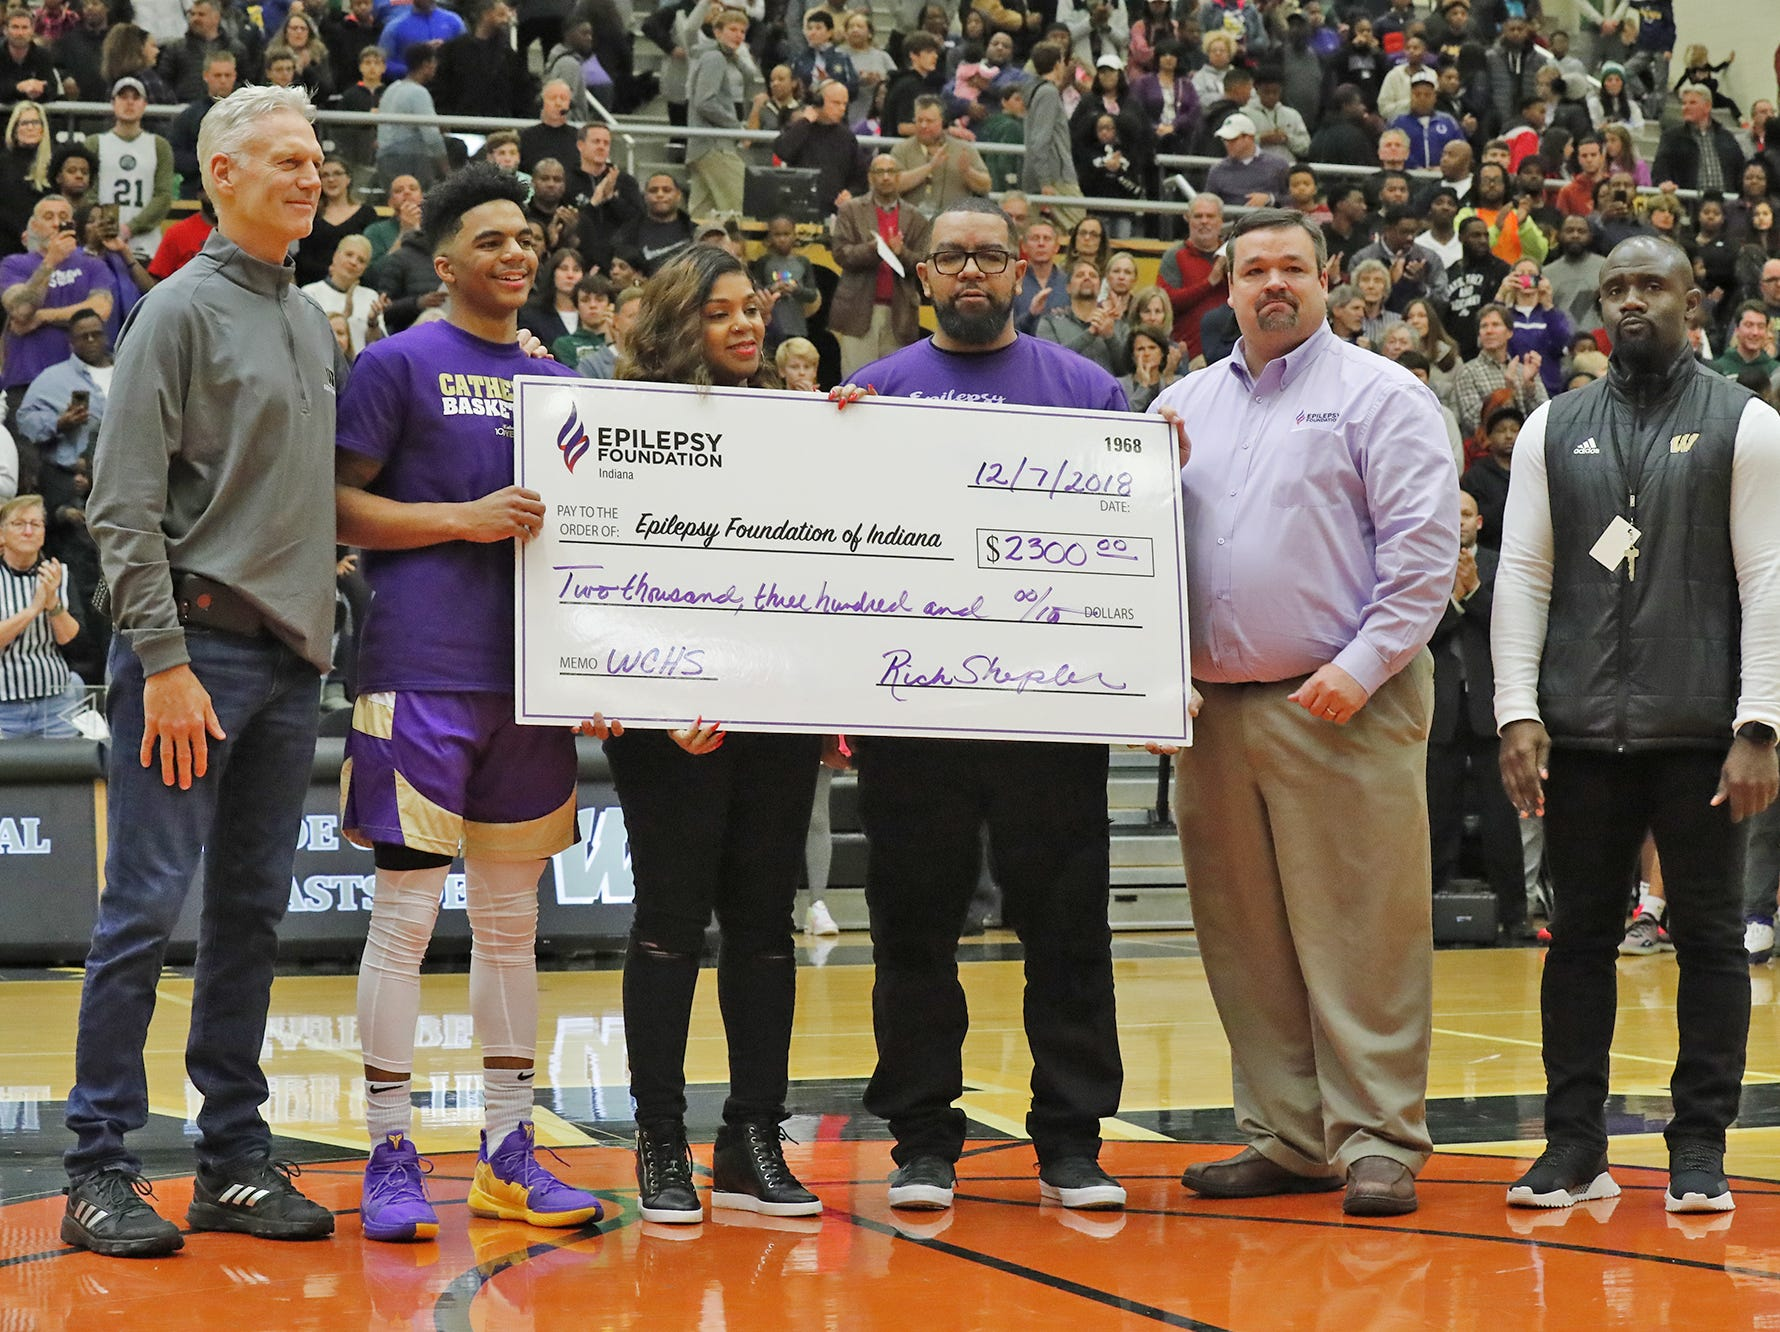 Left to right, Warren Central High School Principal, Rich Shepler,  Cathedral High School's James Franklin Jr., his parents Tamika and James Franklin Sr., and Ryan Keys, a representative from the Indiana Epilepsy Foundation, and Warren Central Athletic Director Marques Clayton, take the court for a check presentation to the Epilepsy Foundation on behalf of James Franklin Jr. who suffers from the disease, before a game between Cathedral High School and Warren Central High School, at Warren Central on Friday, Dec. 7, 2018.